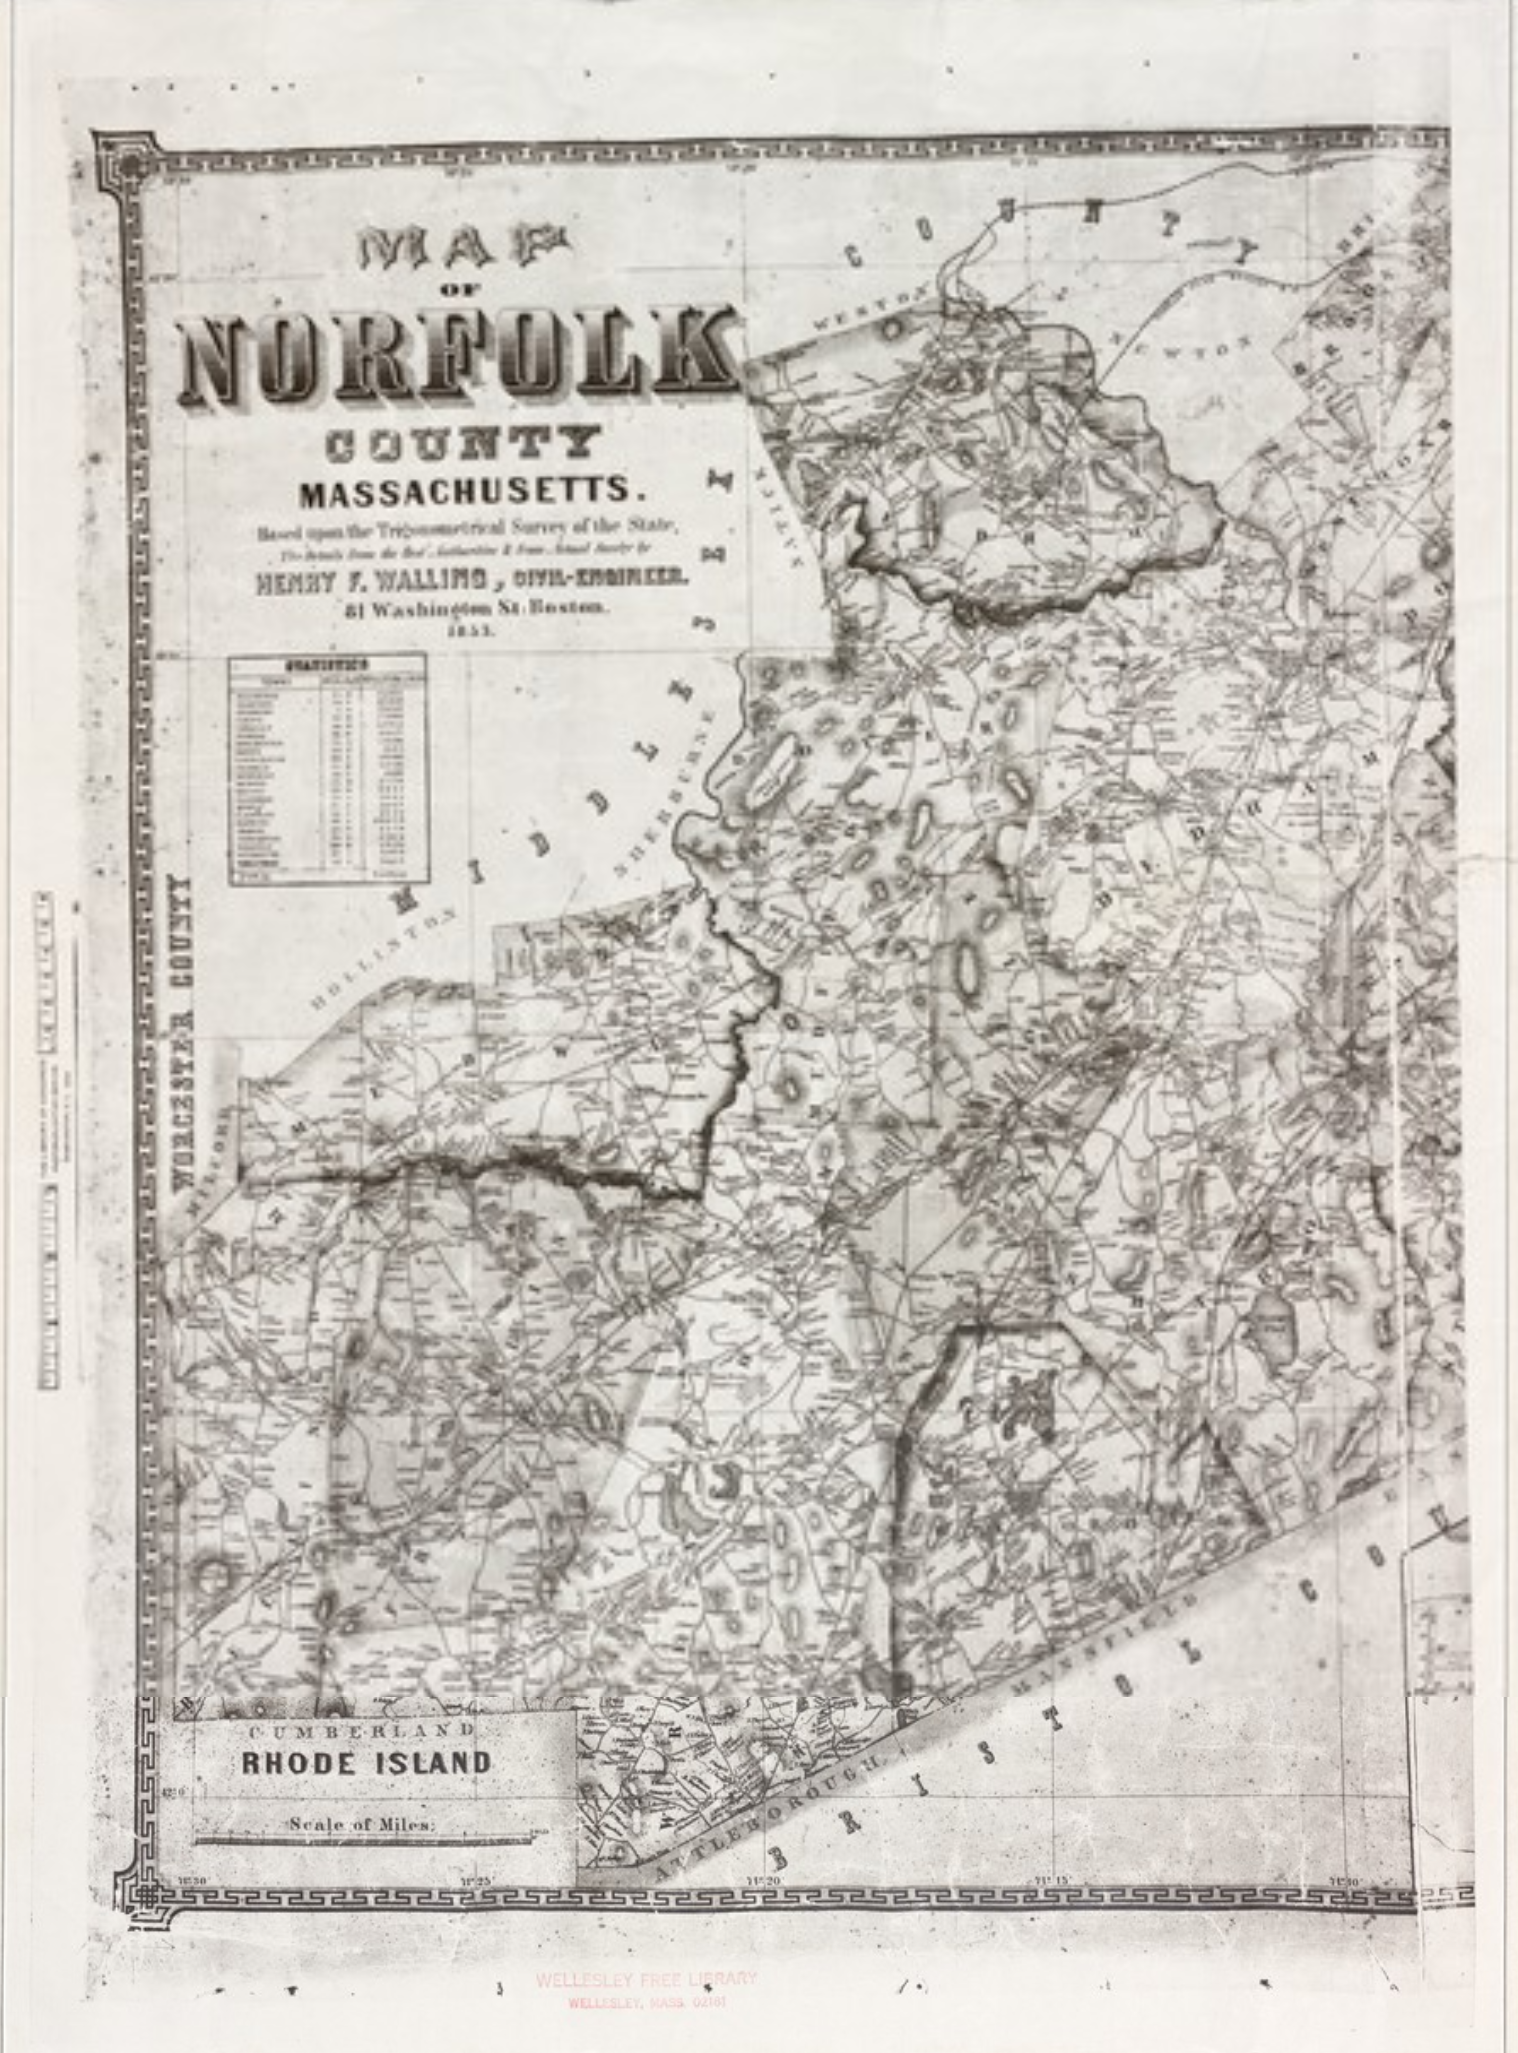 Town of Norfolk, Design Consultant